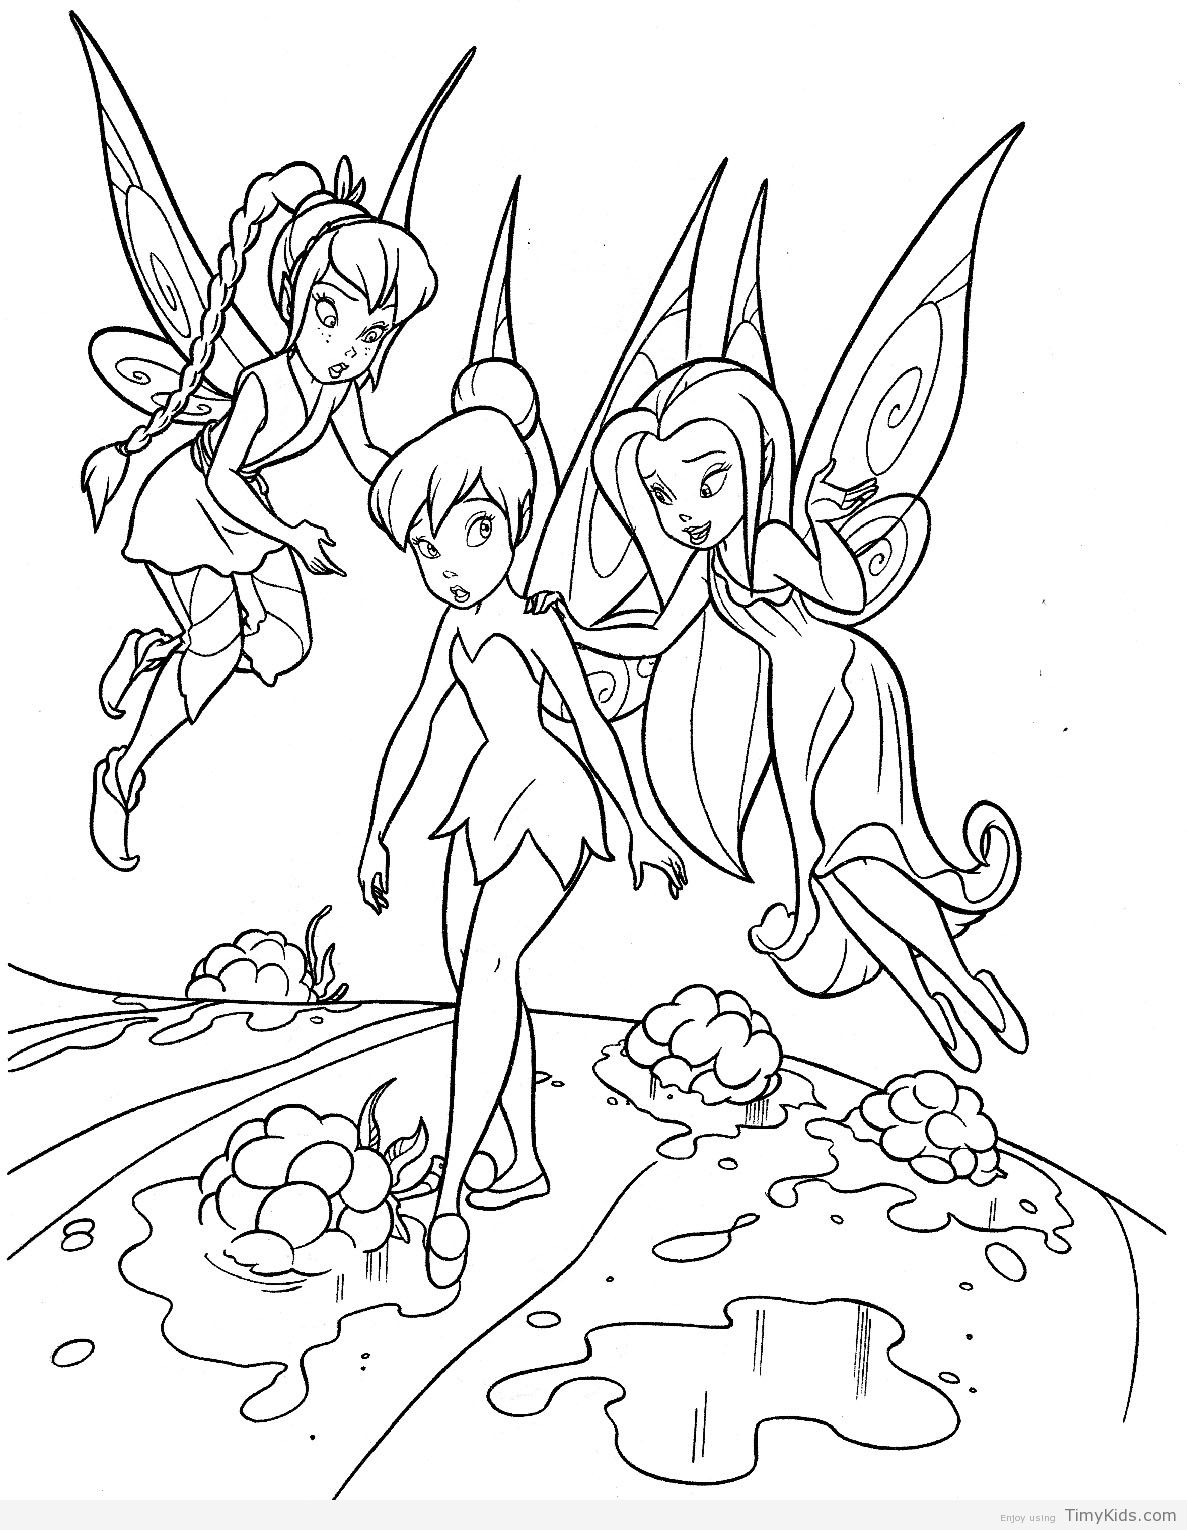 tinkerbell color page | Fairy coloring pages, Fairy ...